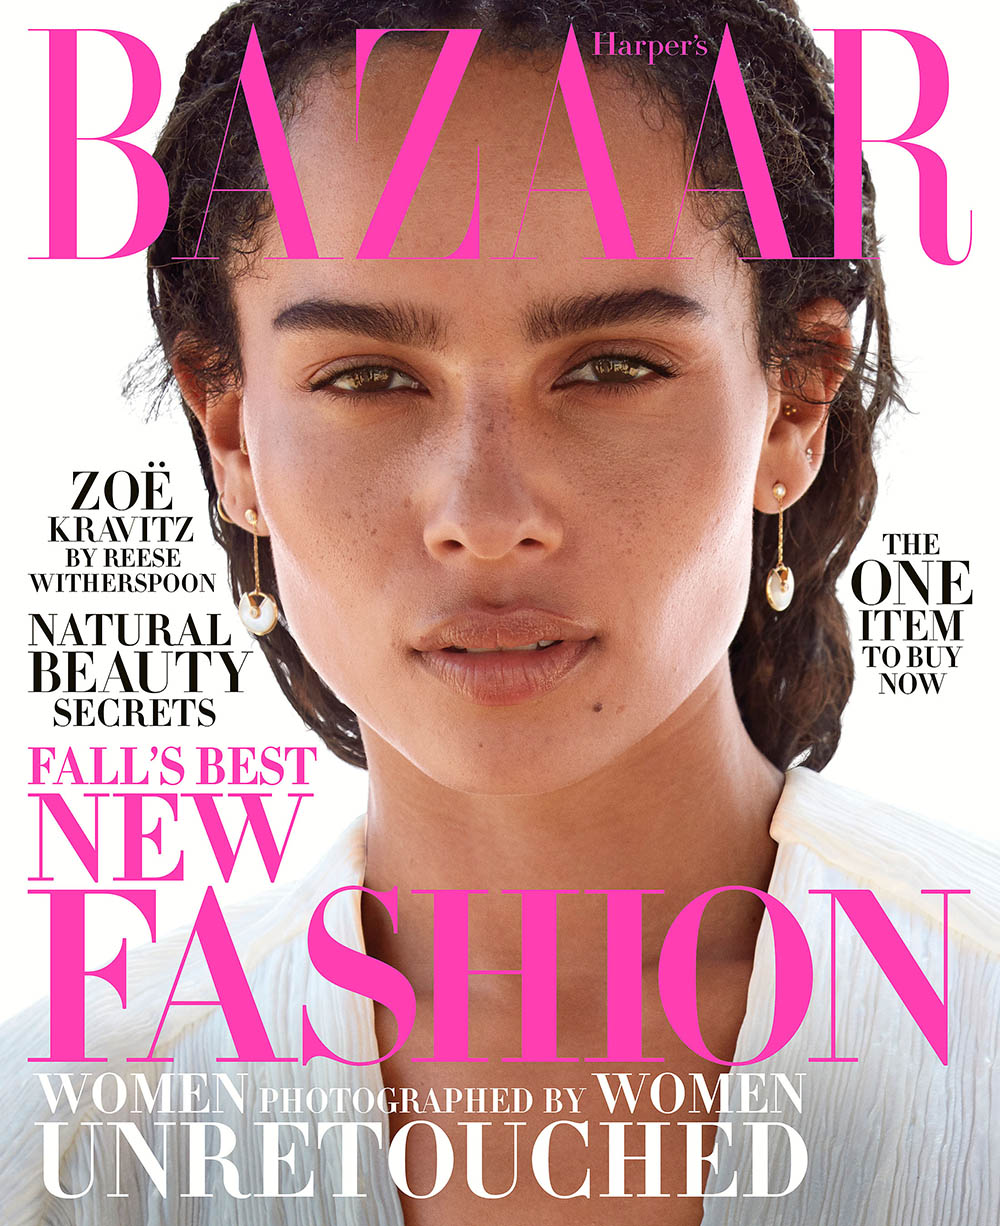 Zoë Kravitz covers Harper's Bazaar US October 2018 by Camilla Akrans